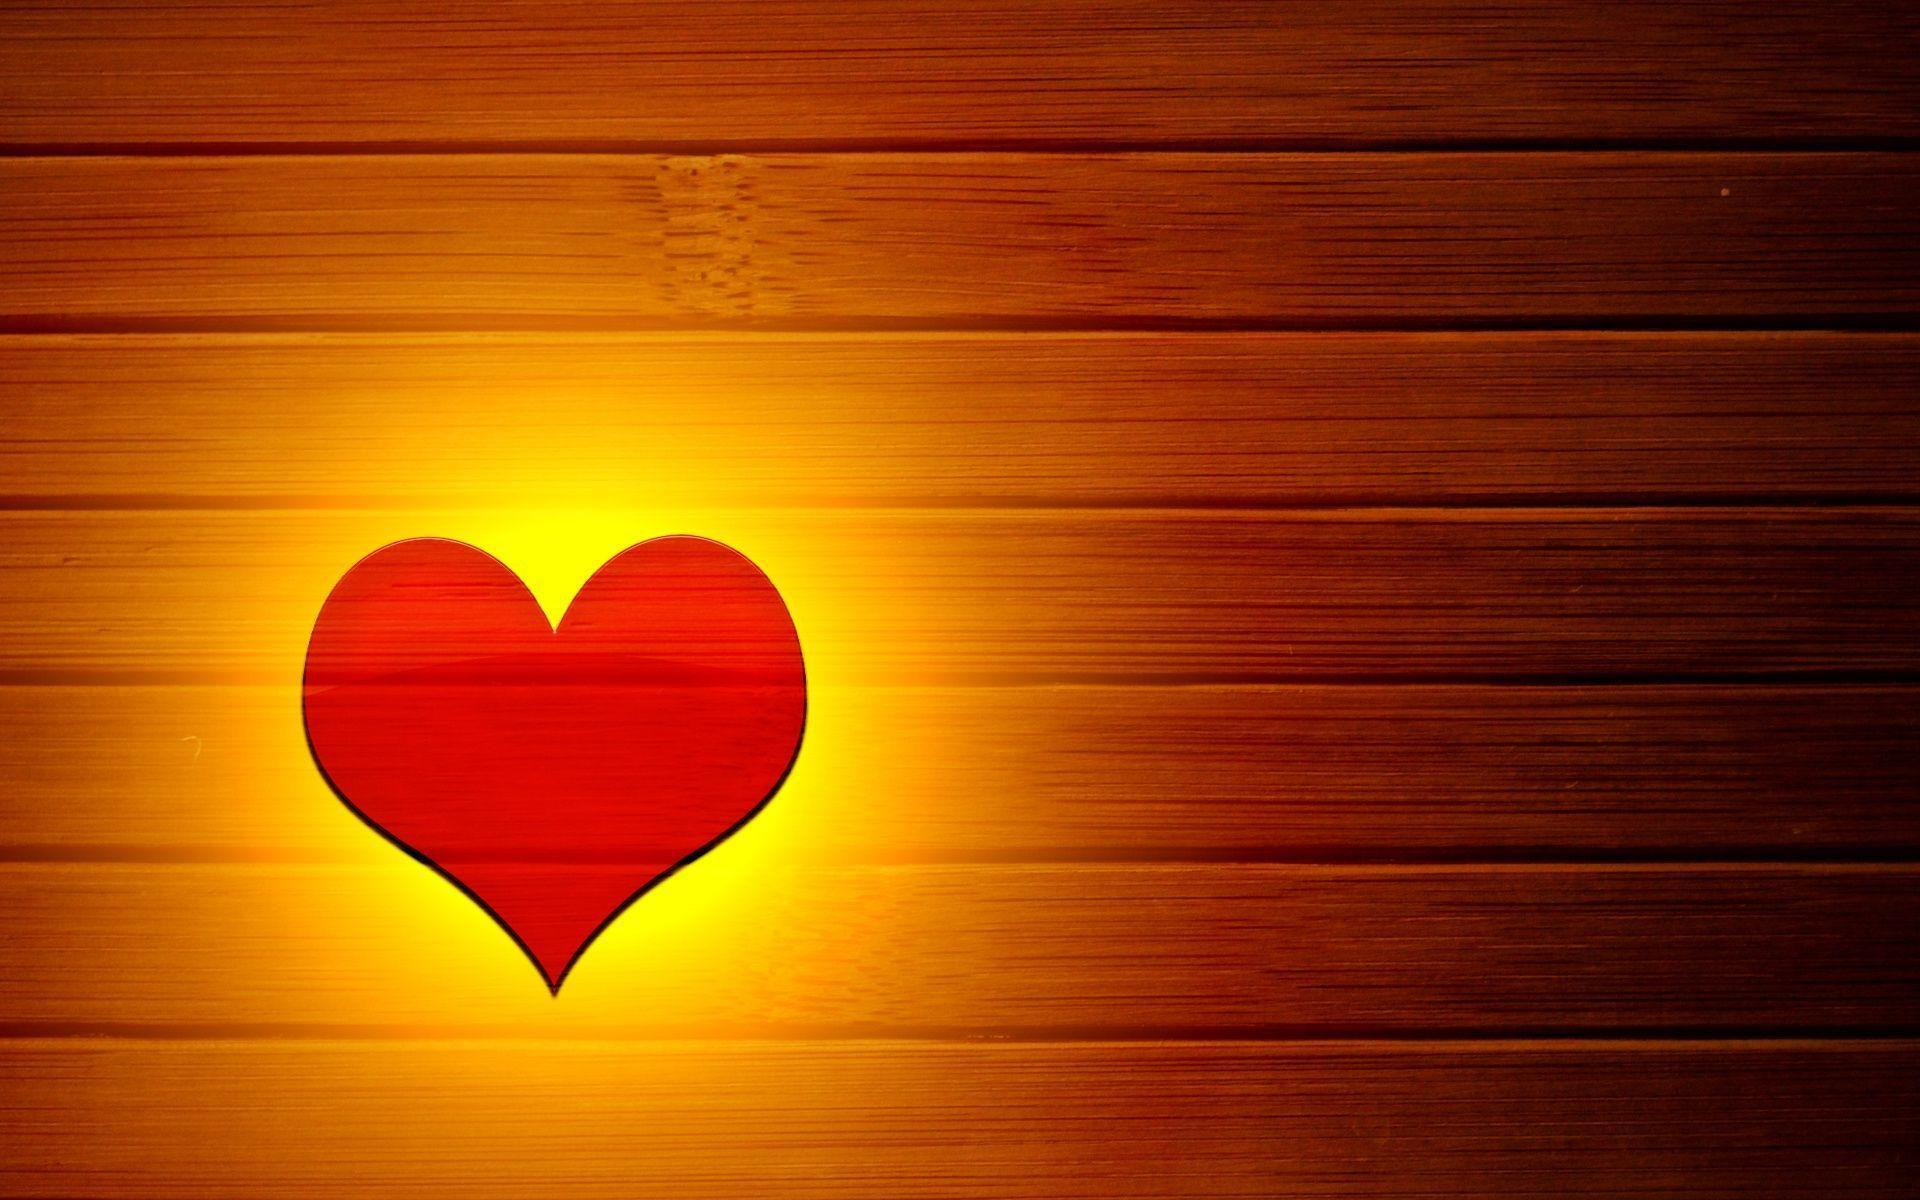 Love Wallpaper Backgrounds - Wallpaper cave